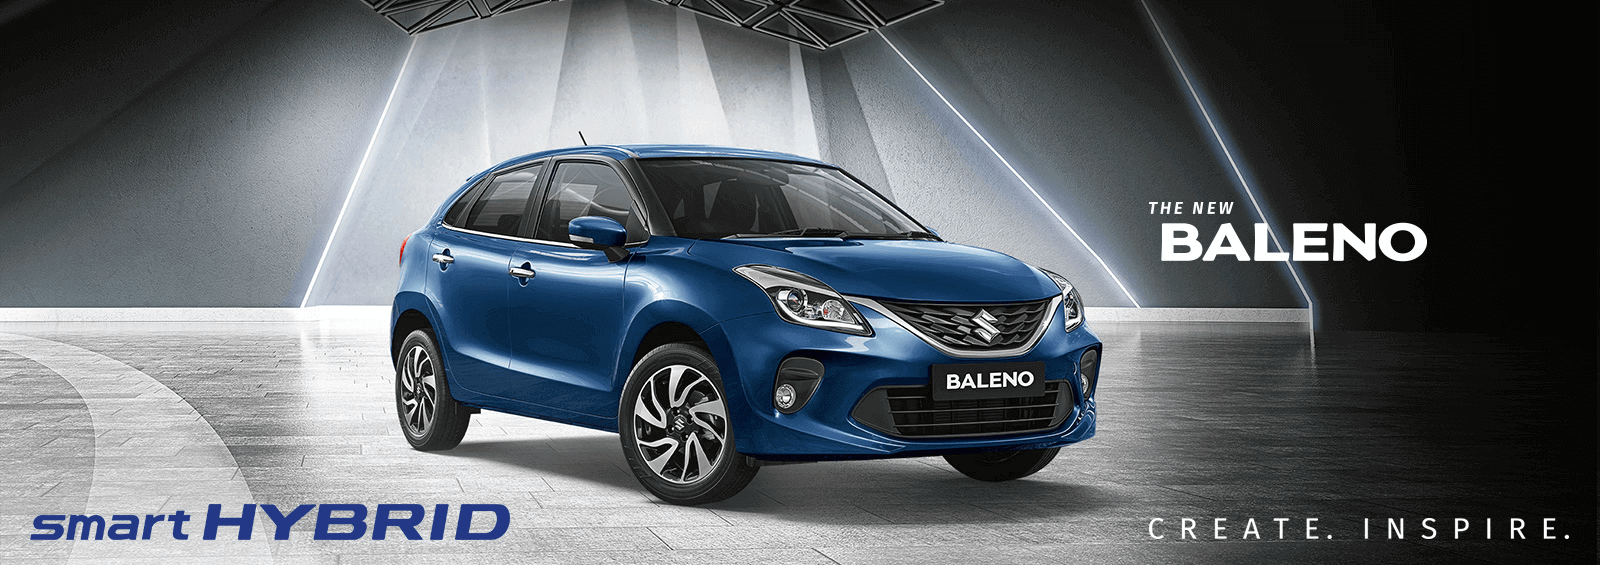 Baleno-Desktop-Banner Prem Motors Pvt. Ltd. Okhla Phase 1, New Delhi